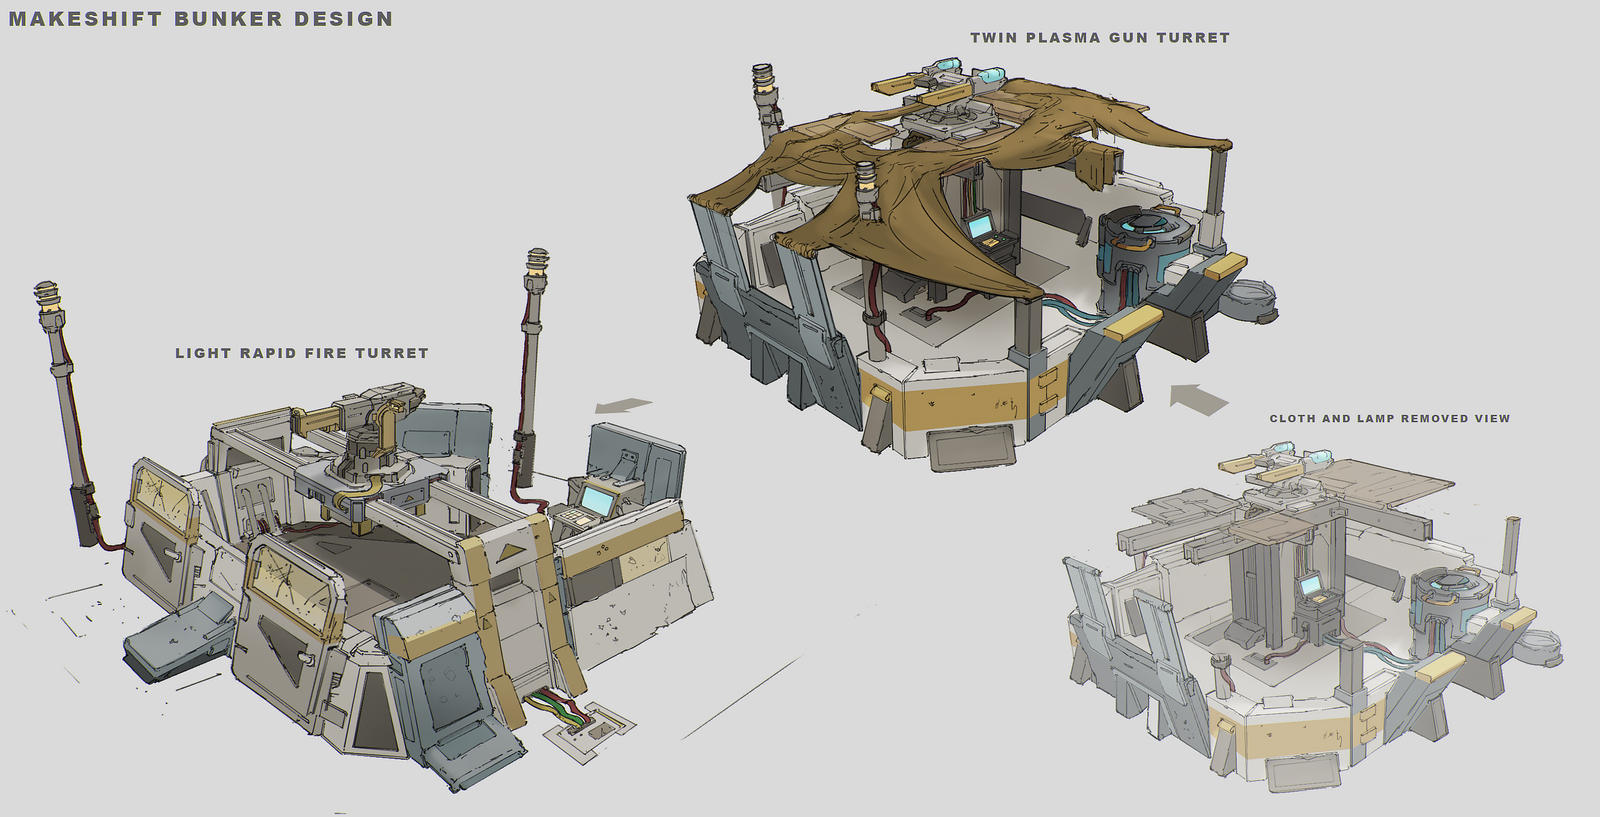 Games With House Building Reddit Tuebor Makeshift Bunker Design By Franklinchan On Deviantart